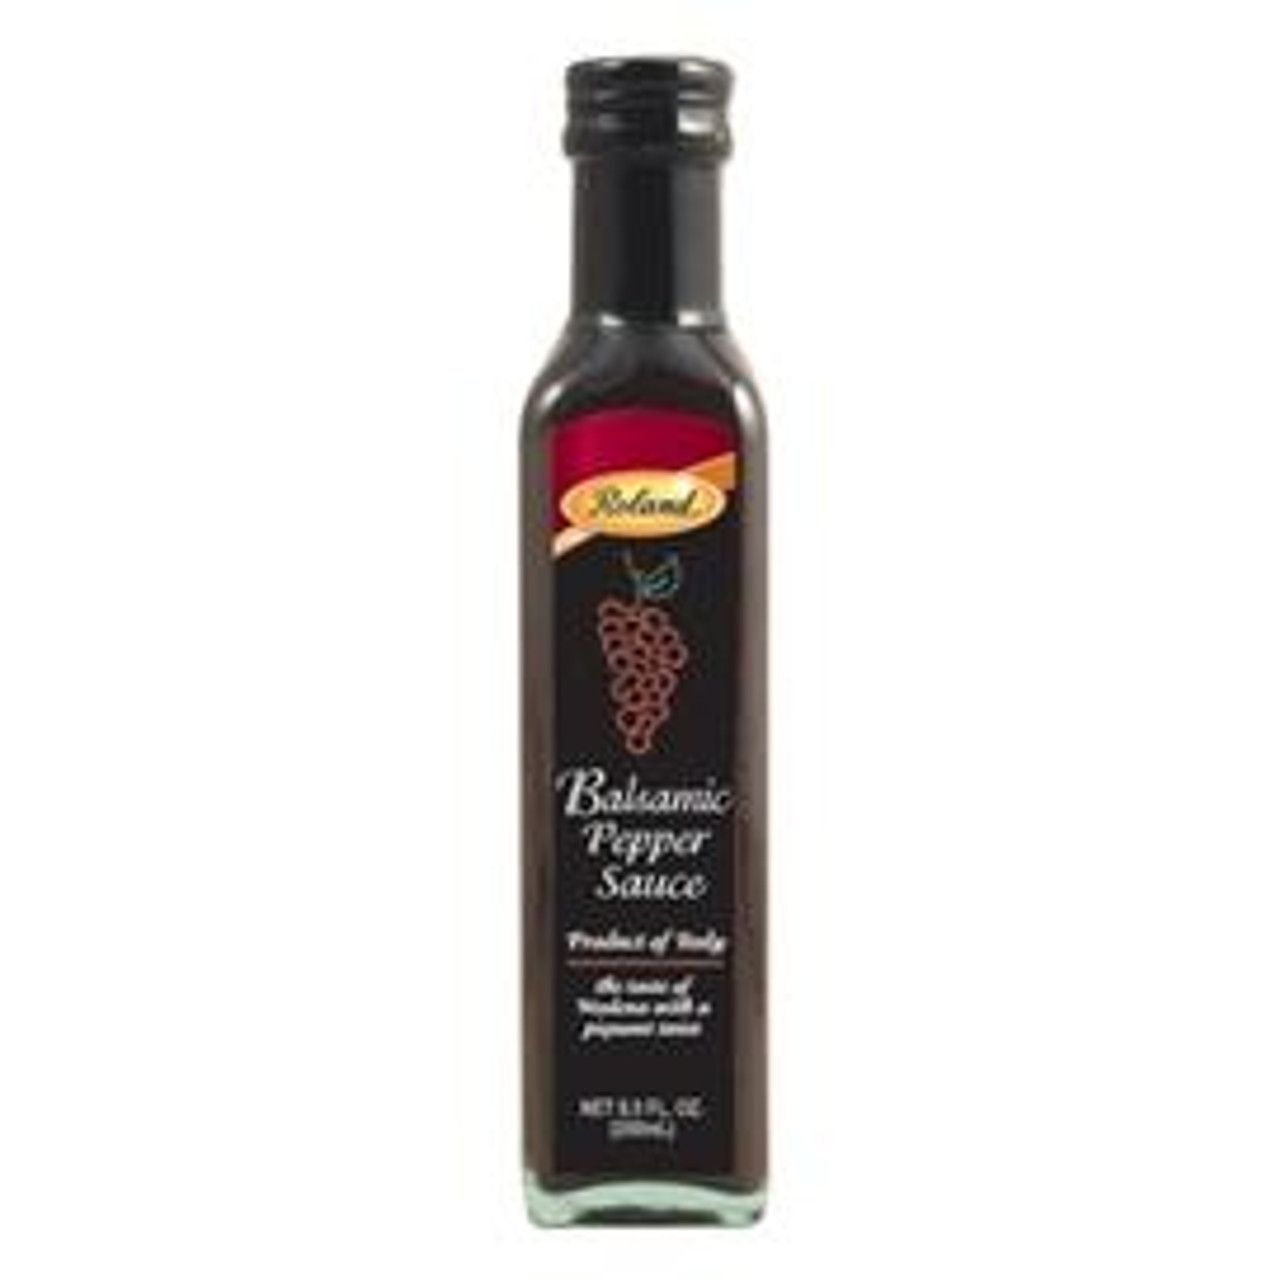 Balsamic Pepper Sauce